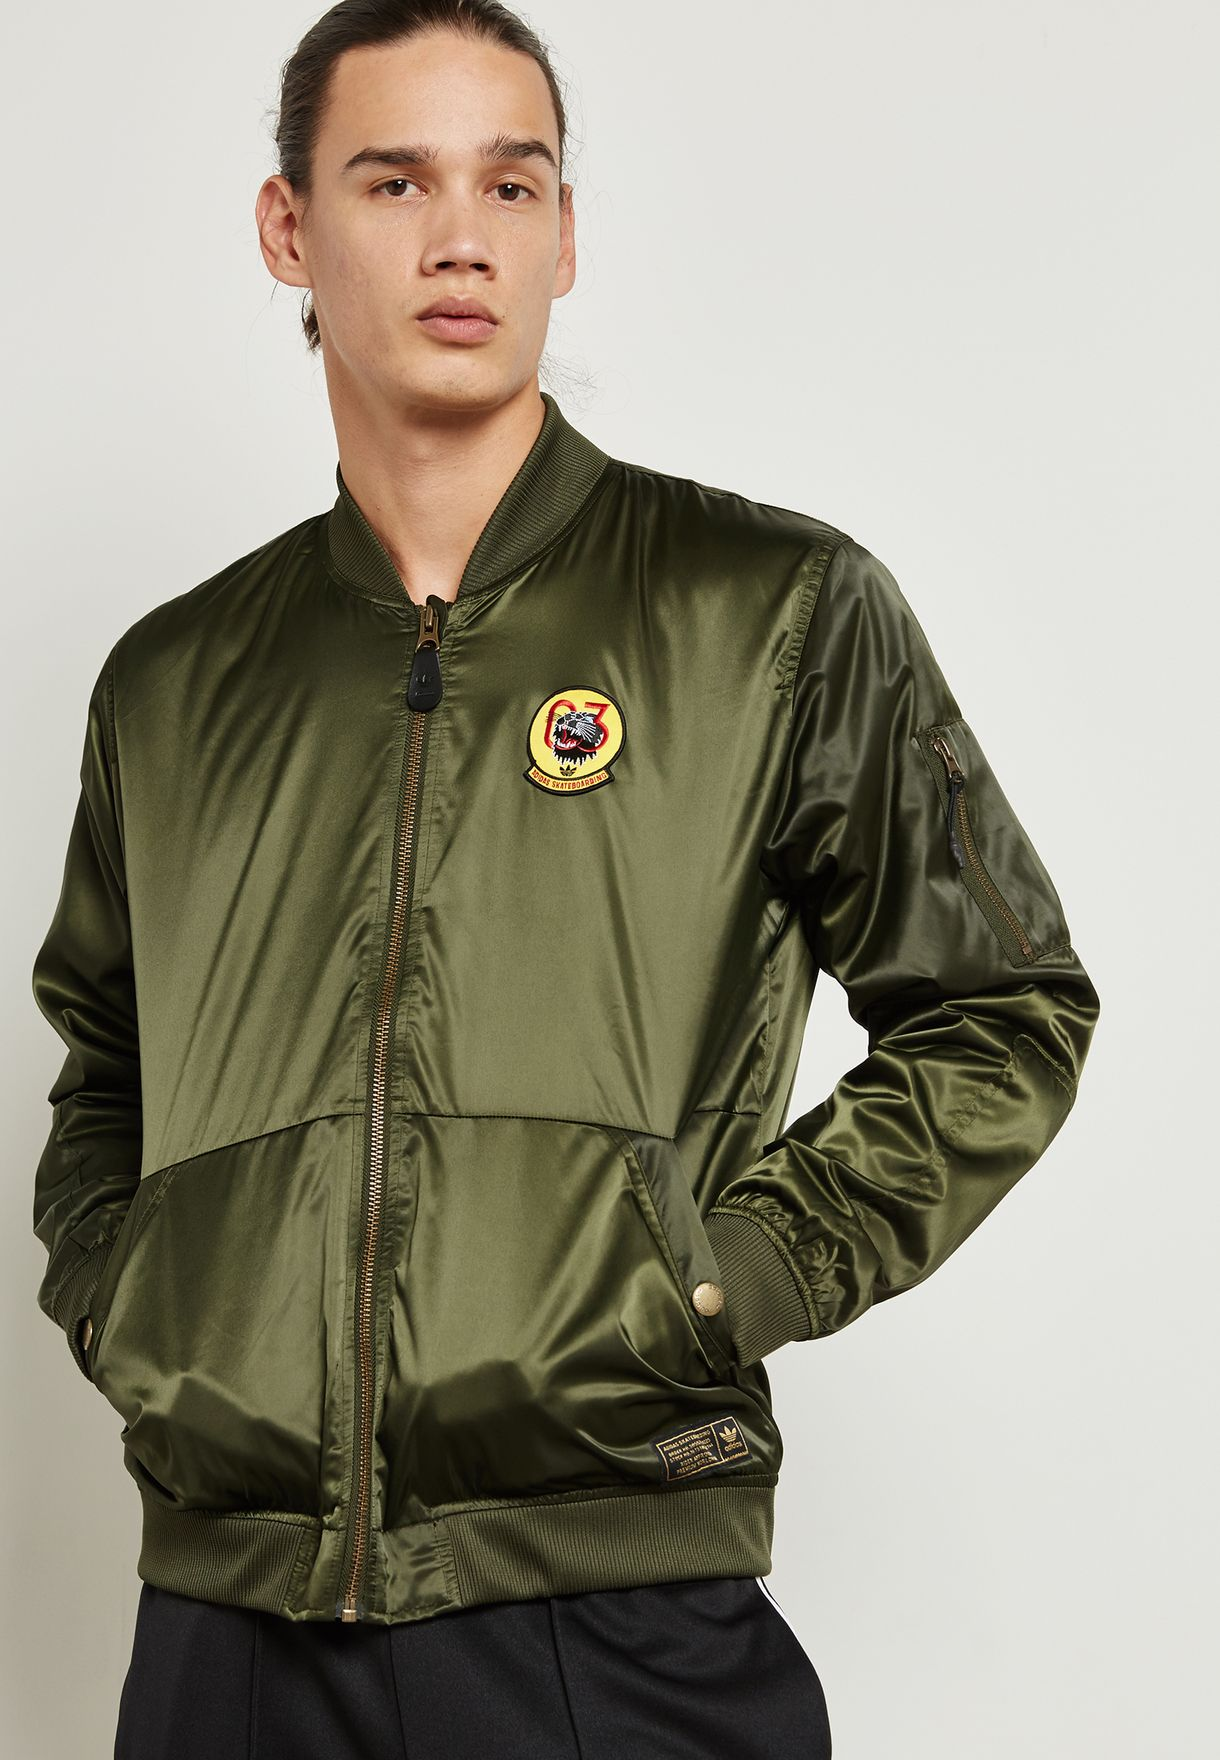 480a4125dba75 Shop adidas Originals green MA1 Bomber Jacket BR4033 for Men in UAE ...